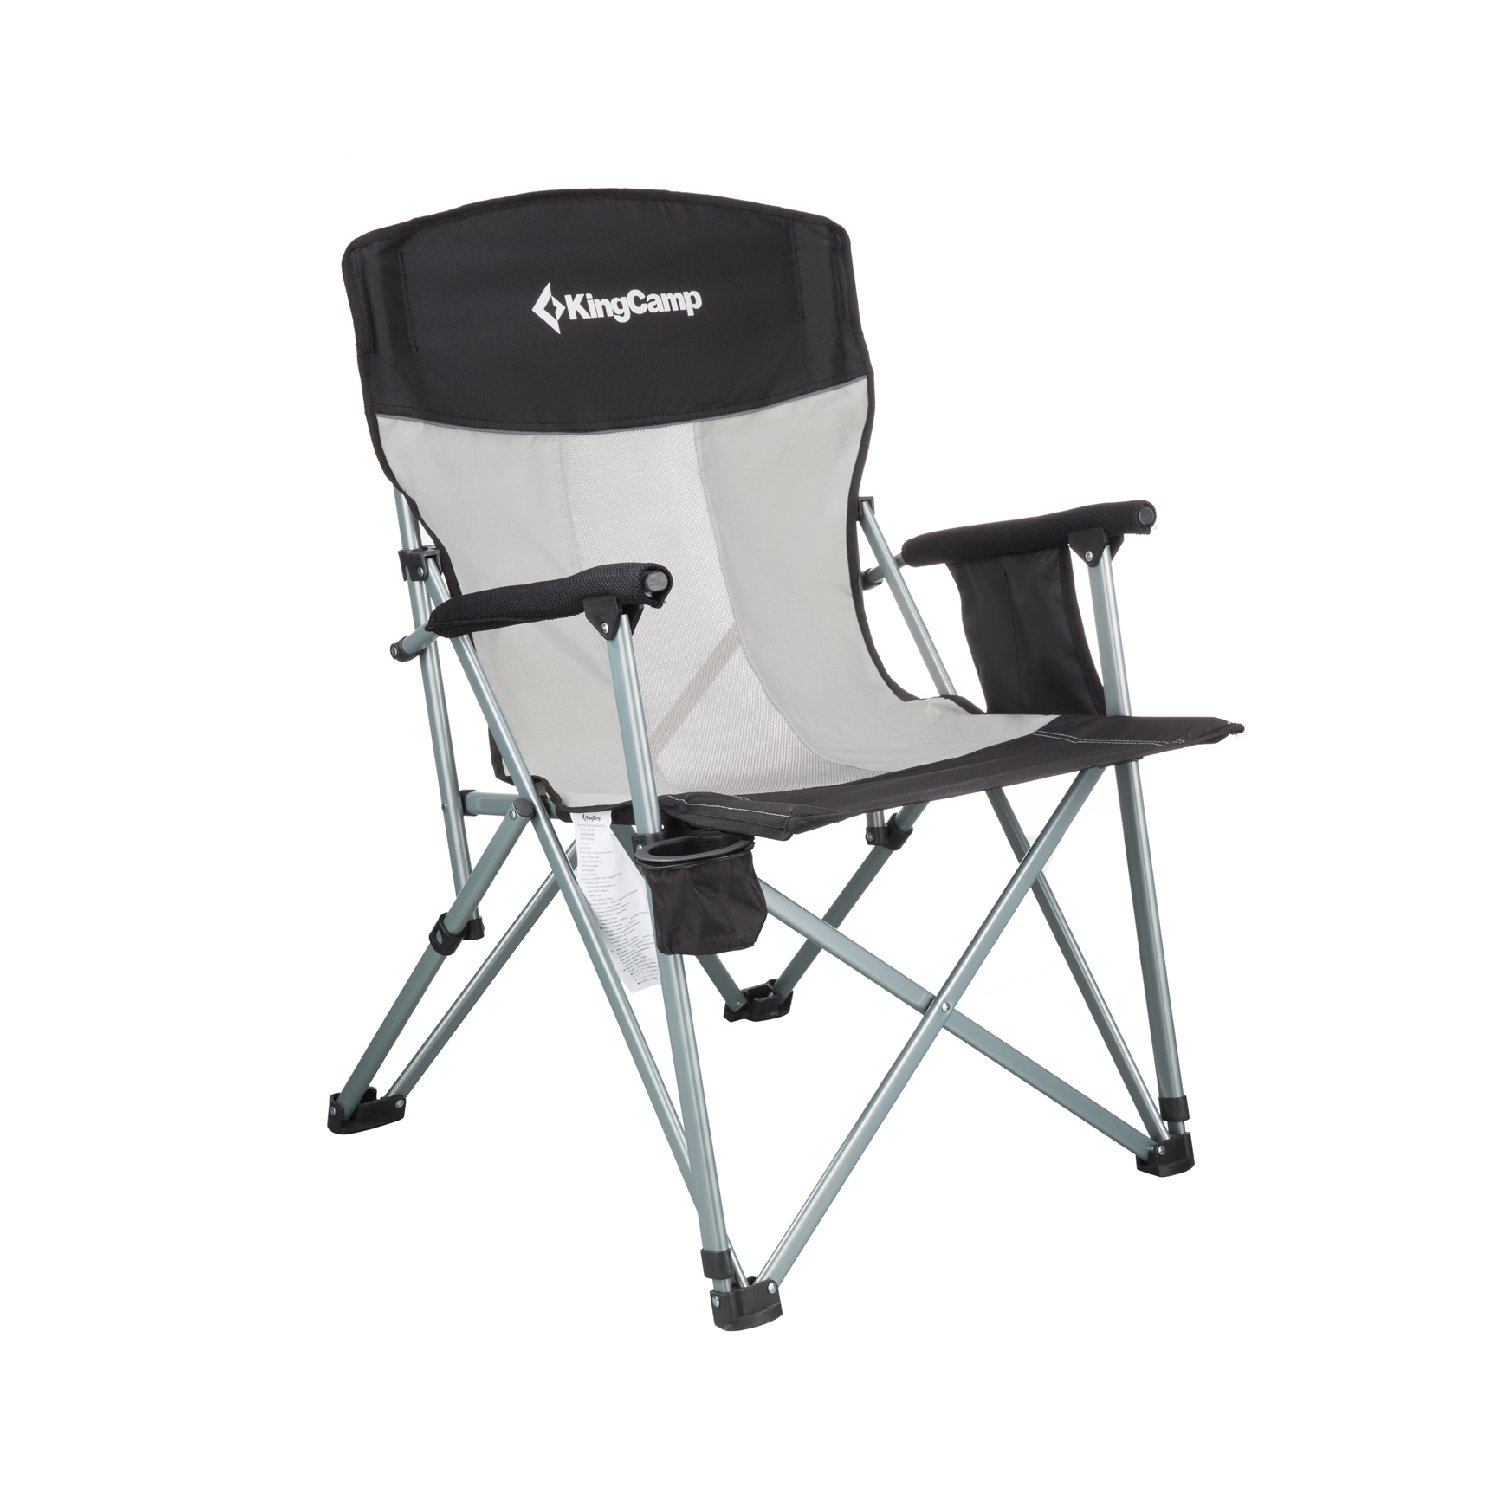 5. KingCamp Camping Chair Mesh High Back